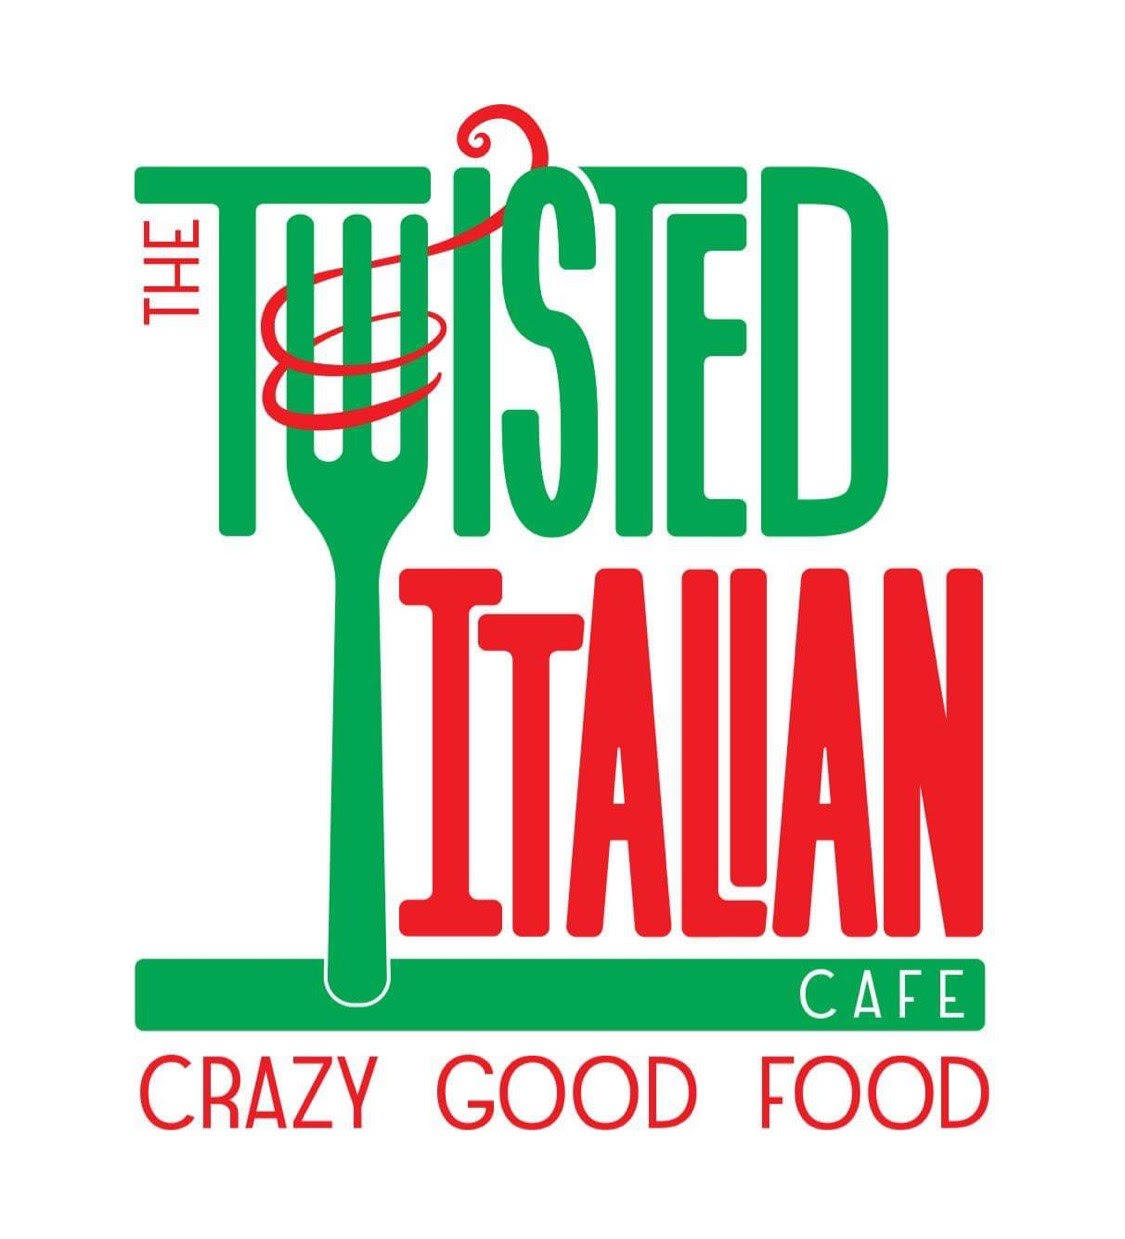 Twisted Italian Cafe